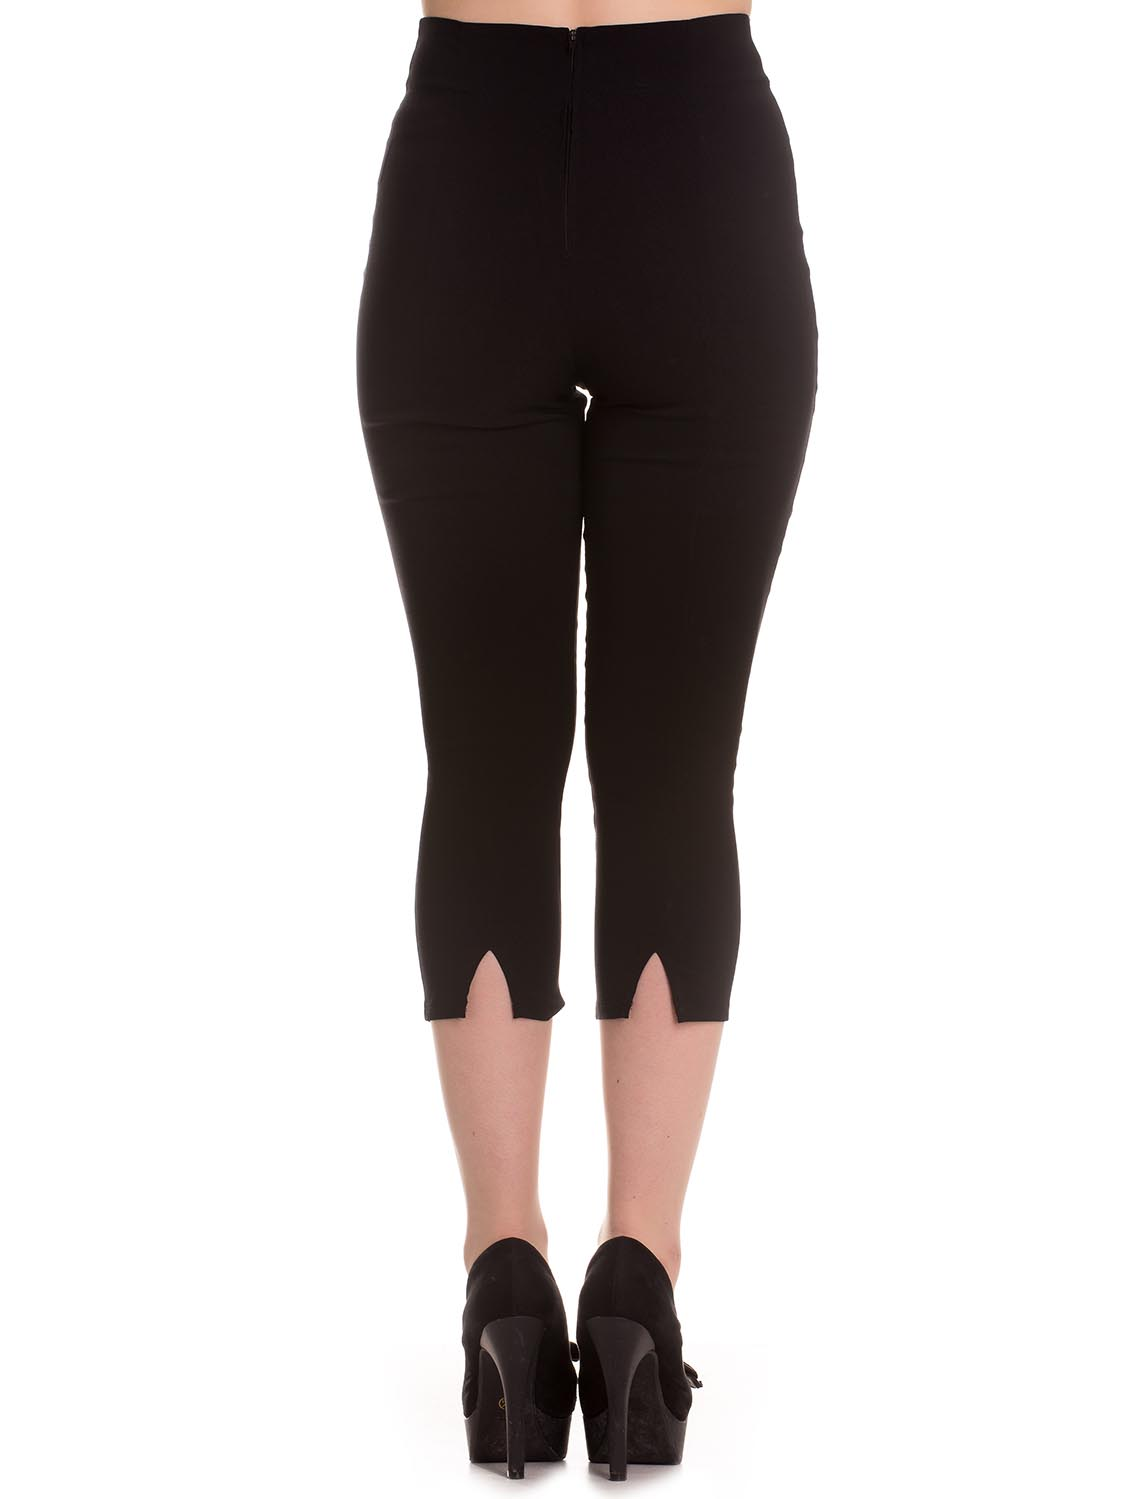 Sentinel Hell Bunny 50s Plain Black Pedal Pushers TINA Capris Capri Trousers  All Sizes b5acbcee5